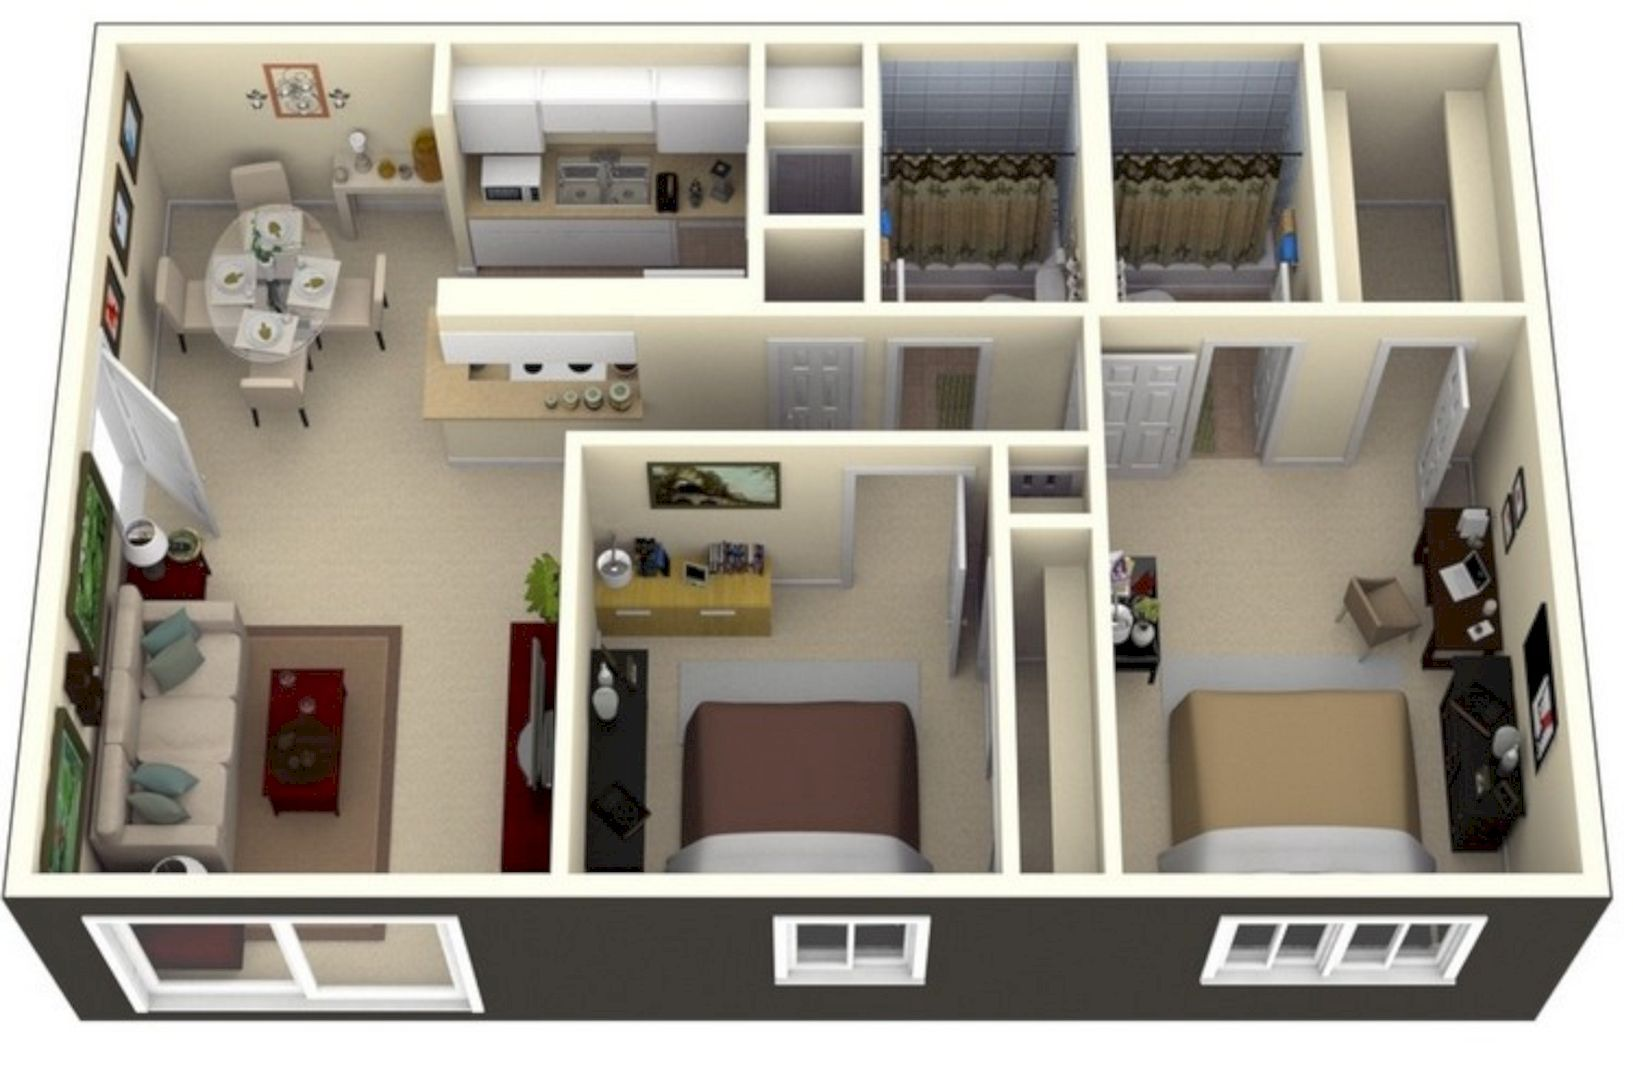 Why Do We Need 3d House Plan Before Starting The Project Small House Design Small House Plans Apartment Layout